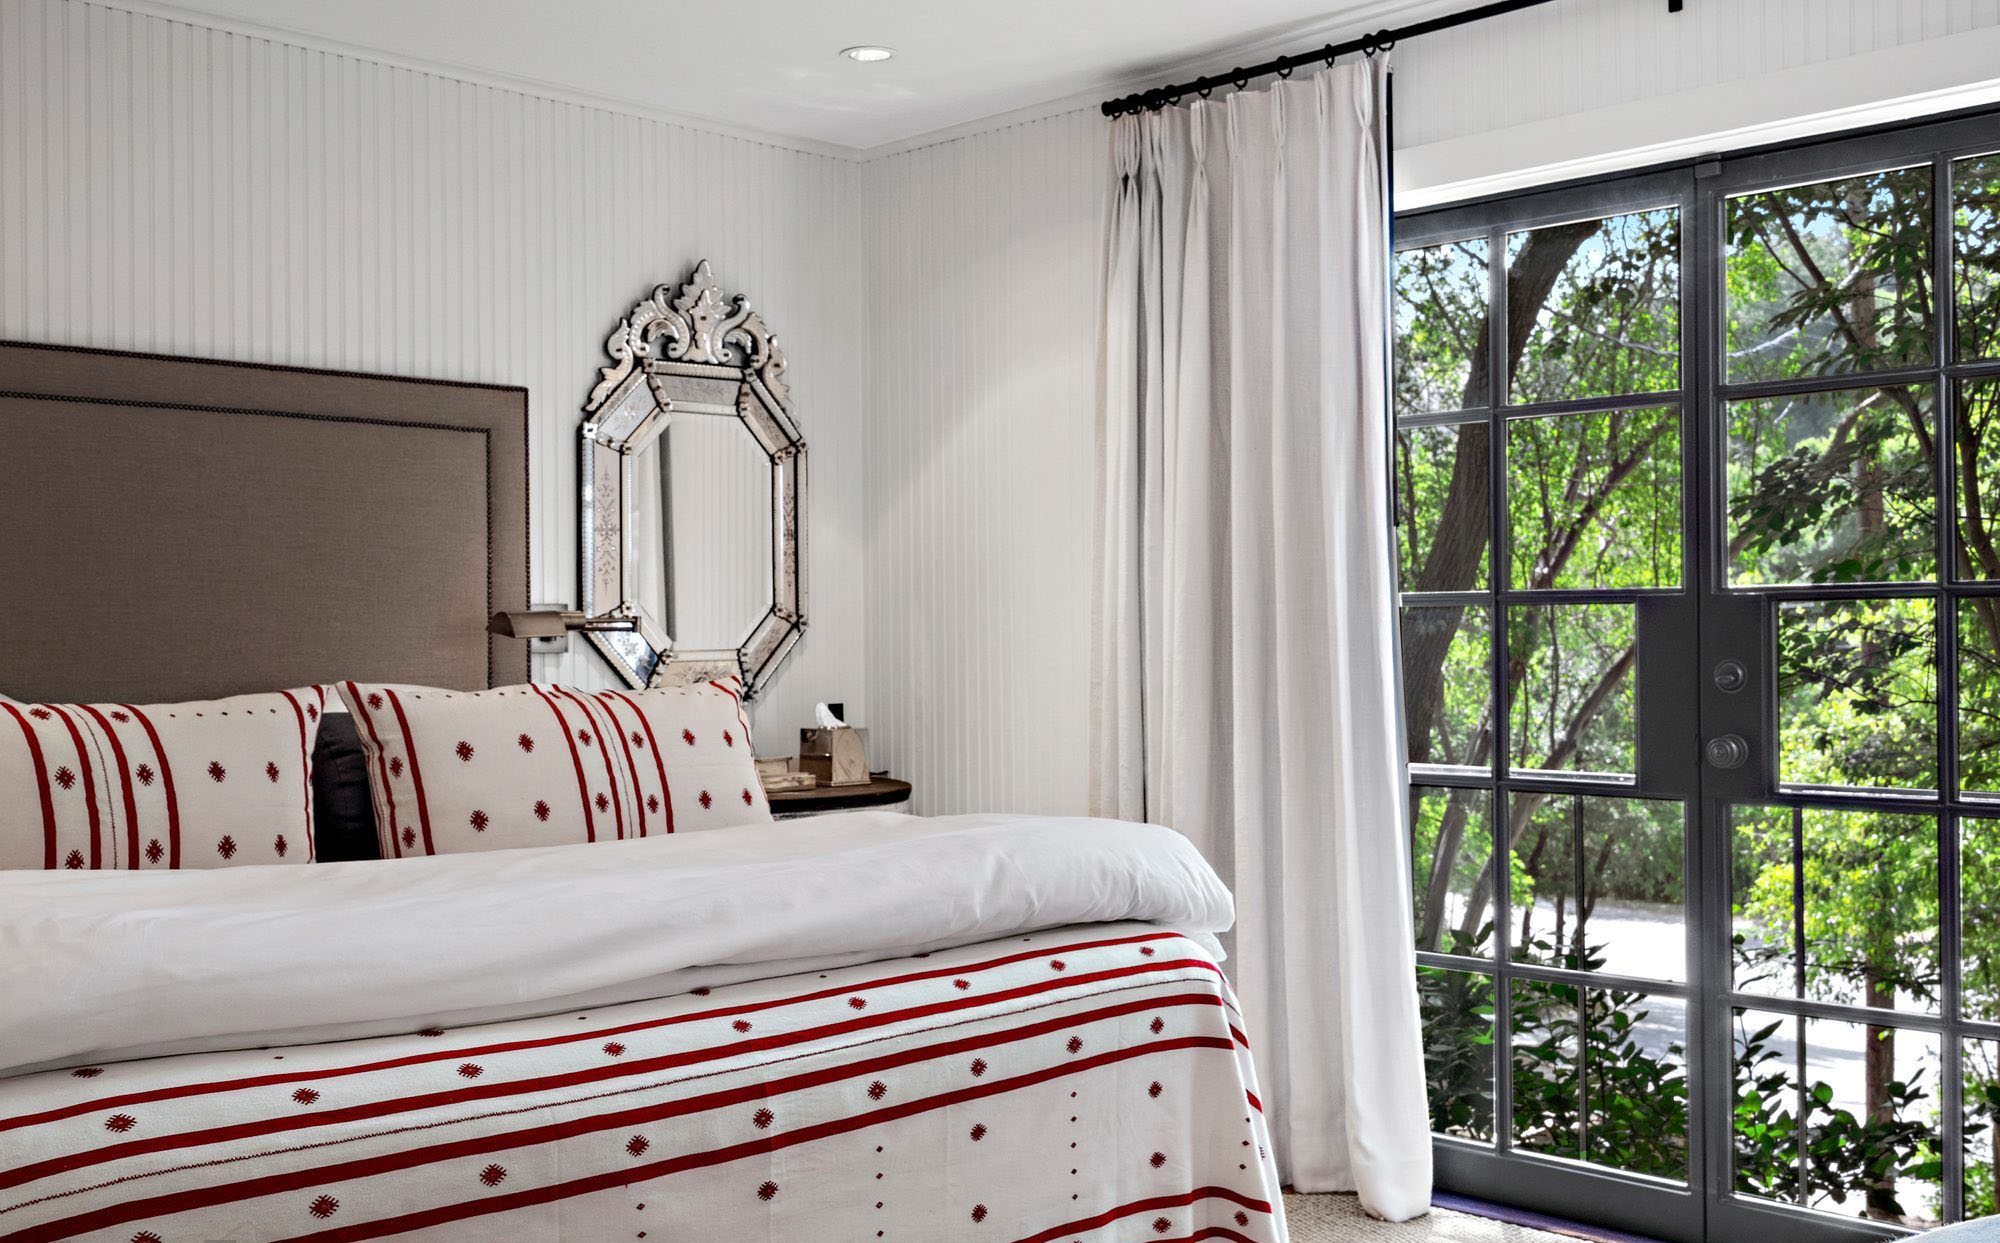 Vertical wall paneling is a great way to make a small bedroom feel larger.